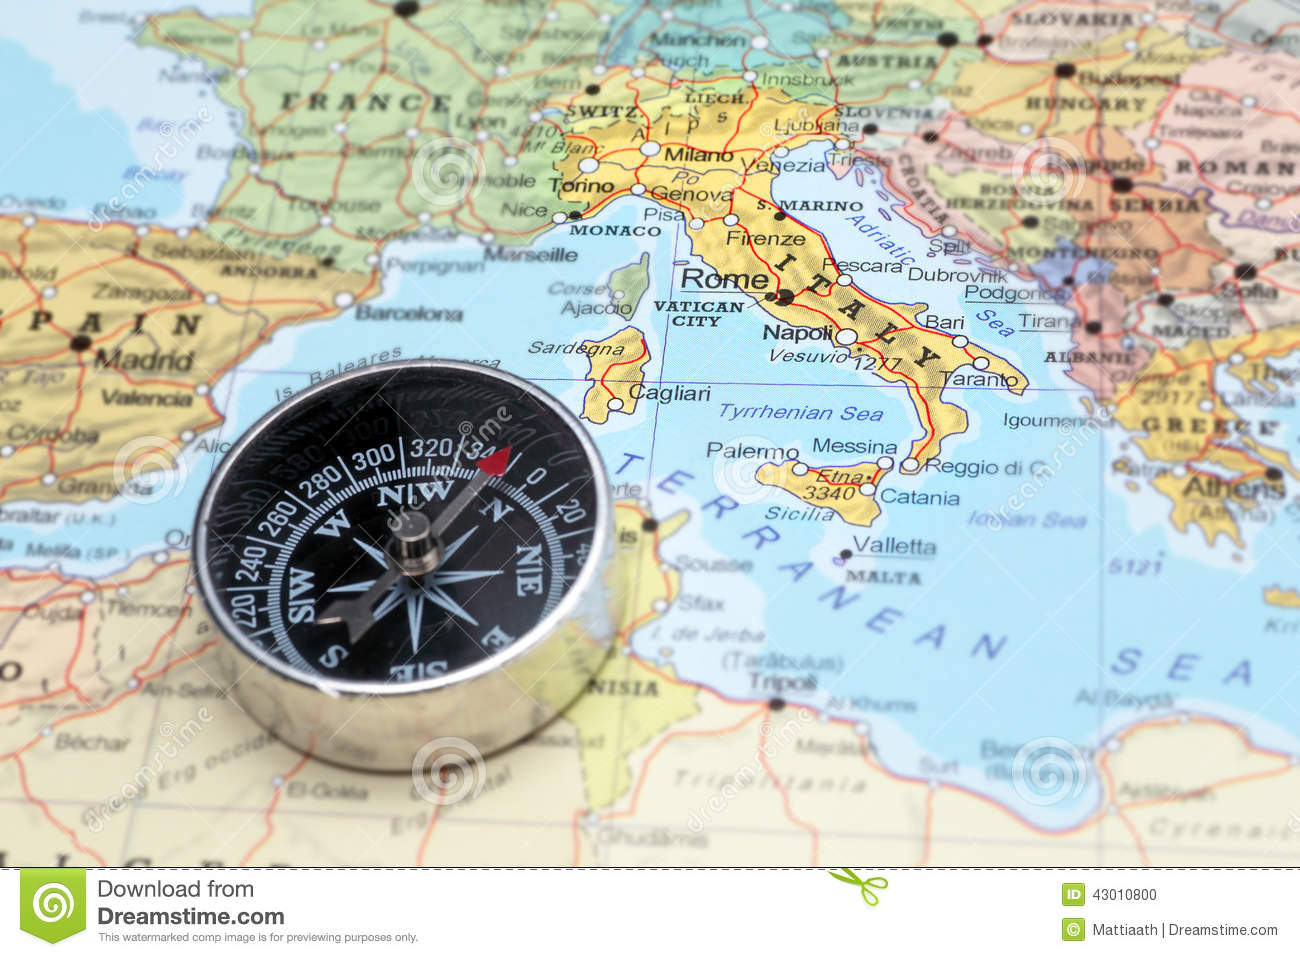 Download comp Travel Destination Italy Map With